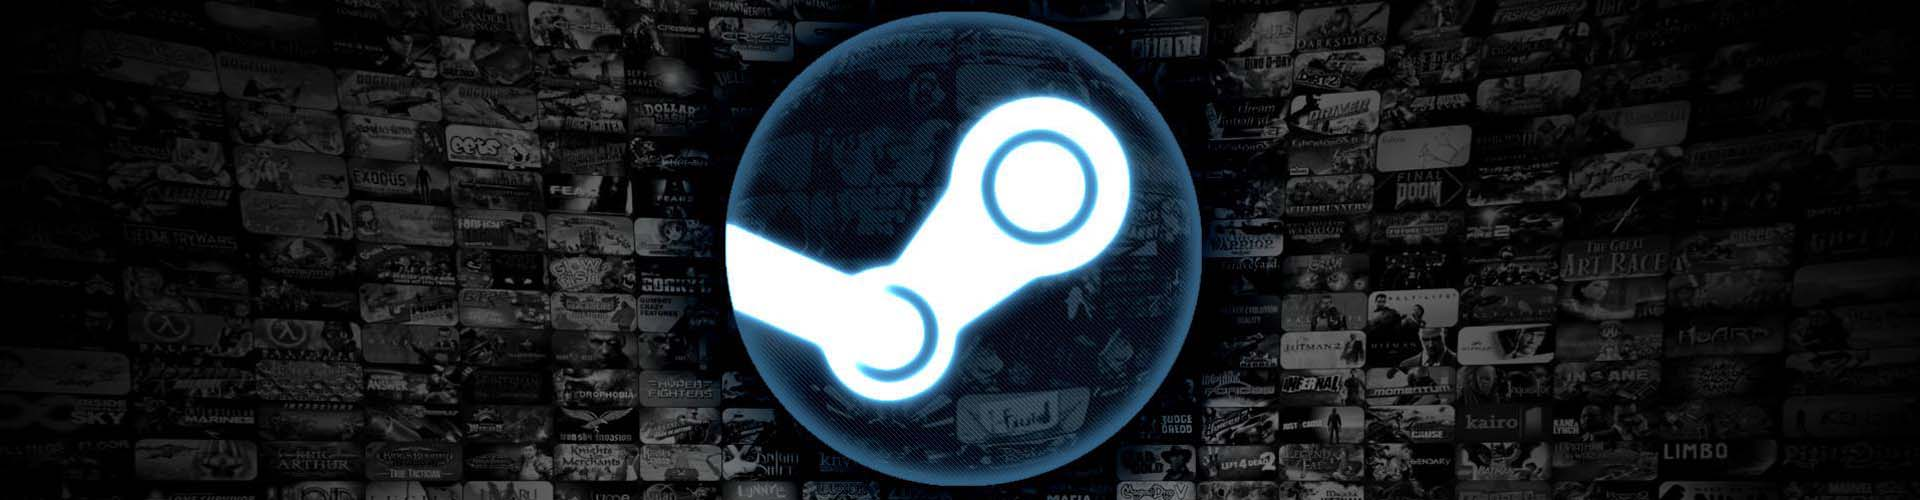 Steam Missing File Privileges? Here's The Fix